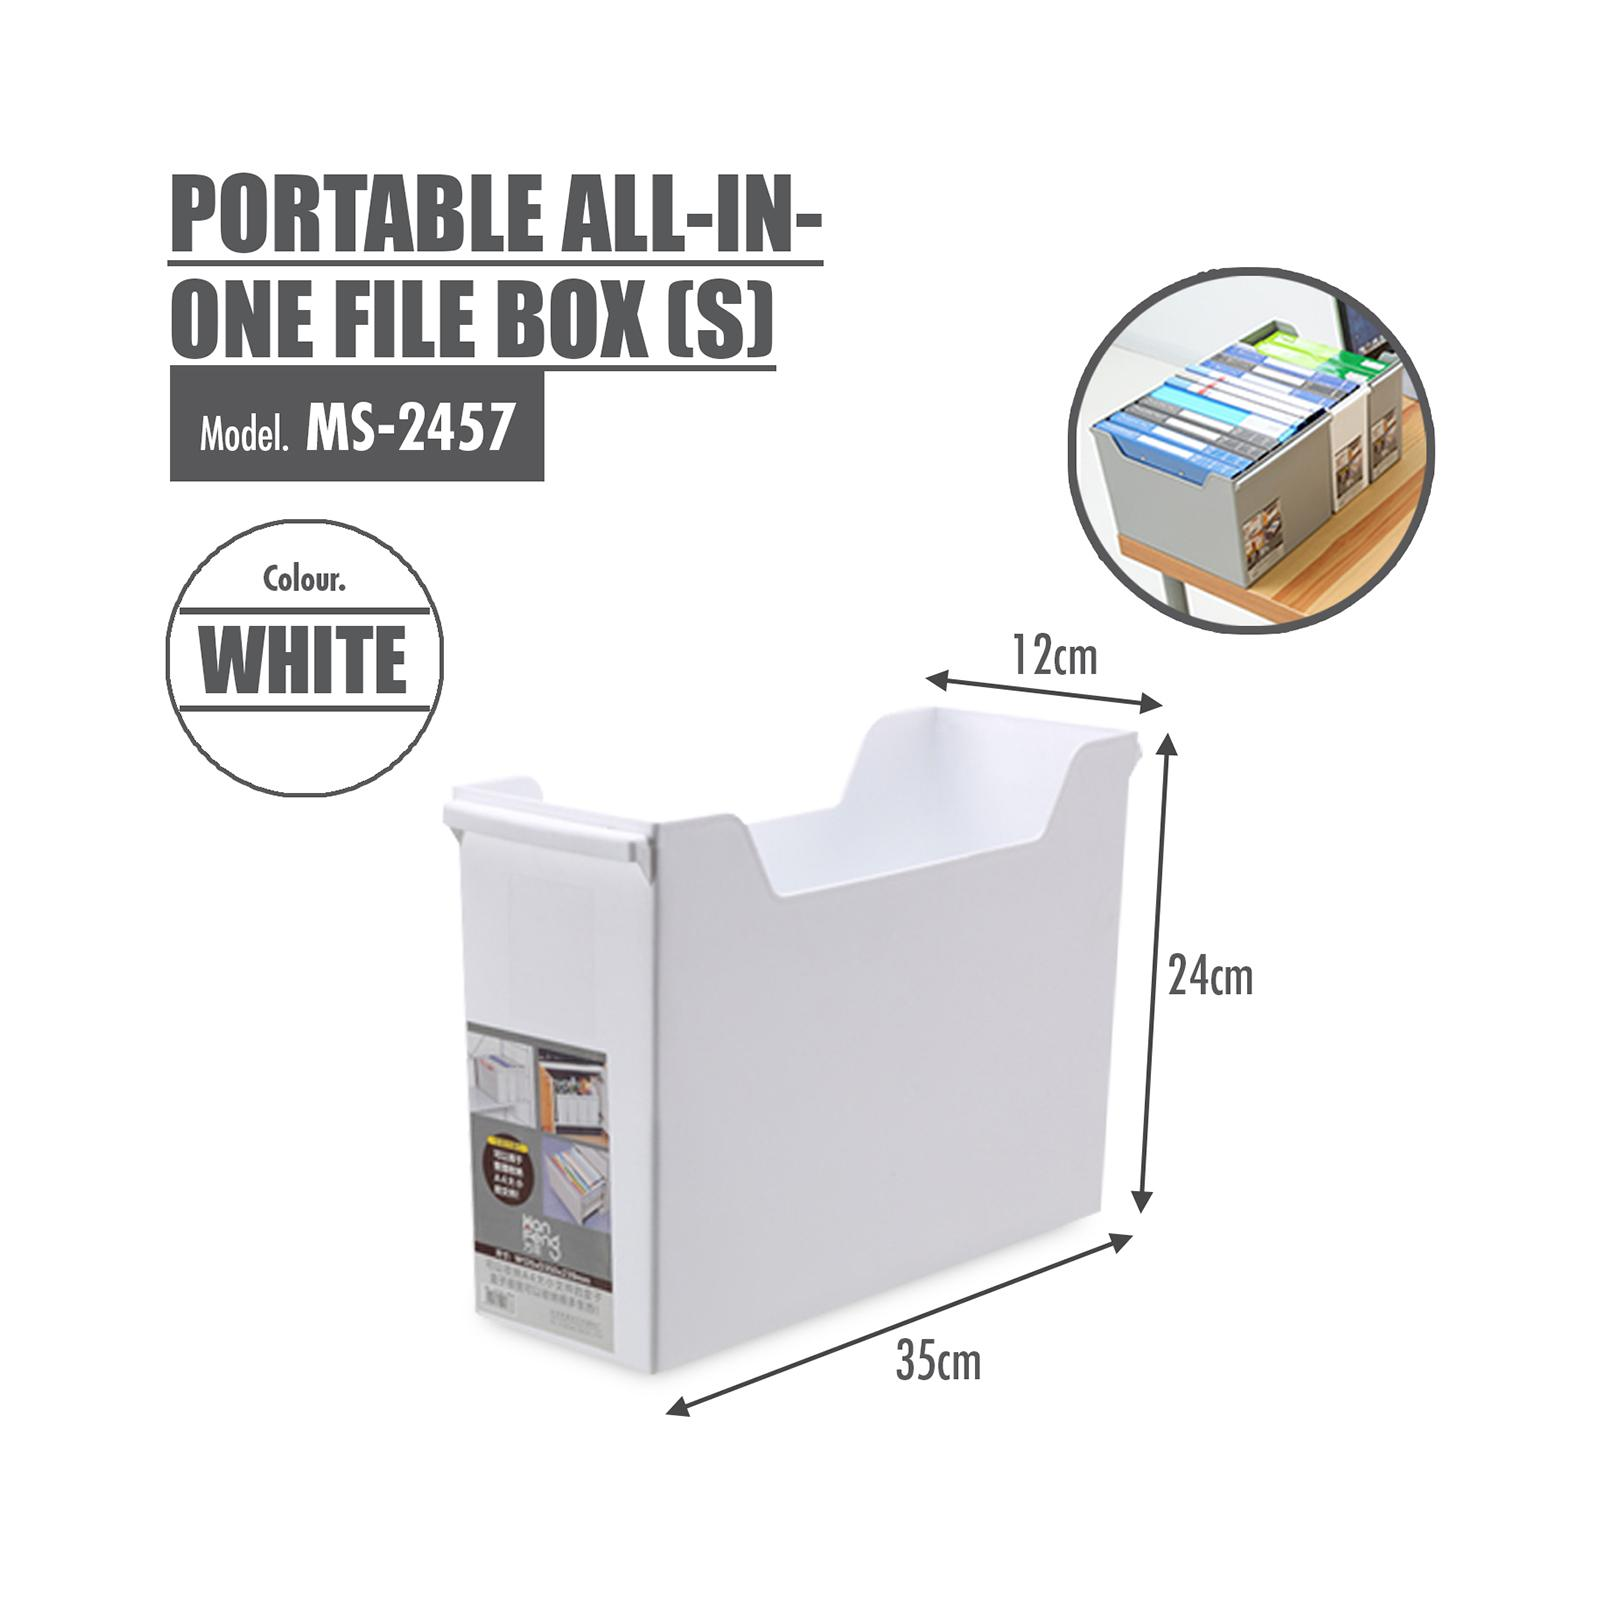 HOUZE Portable All-In-One File Box (S) (Dim: 35 x 12 x 24cm)